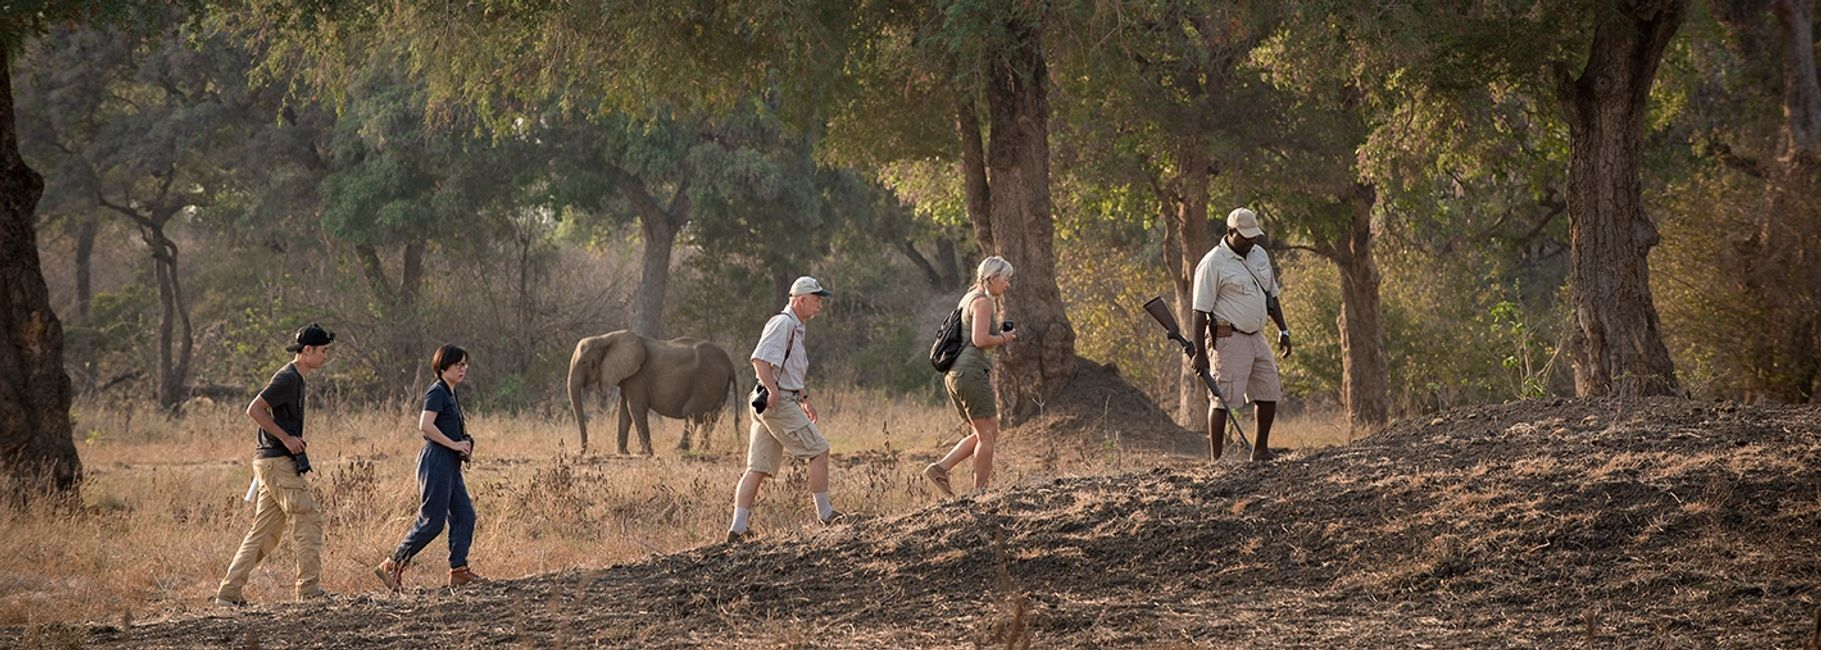 Elephant on walking safari, Mana Pools National Park, Wilderness Safaris, Zimbabwe